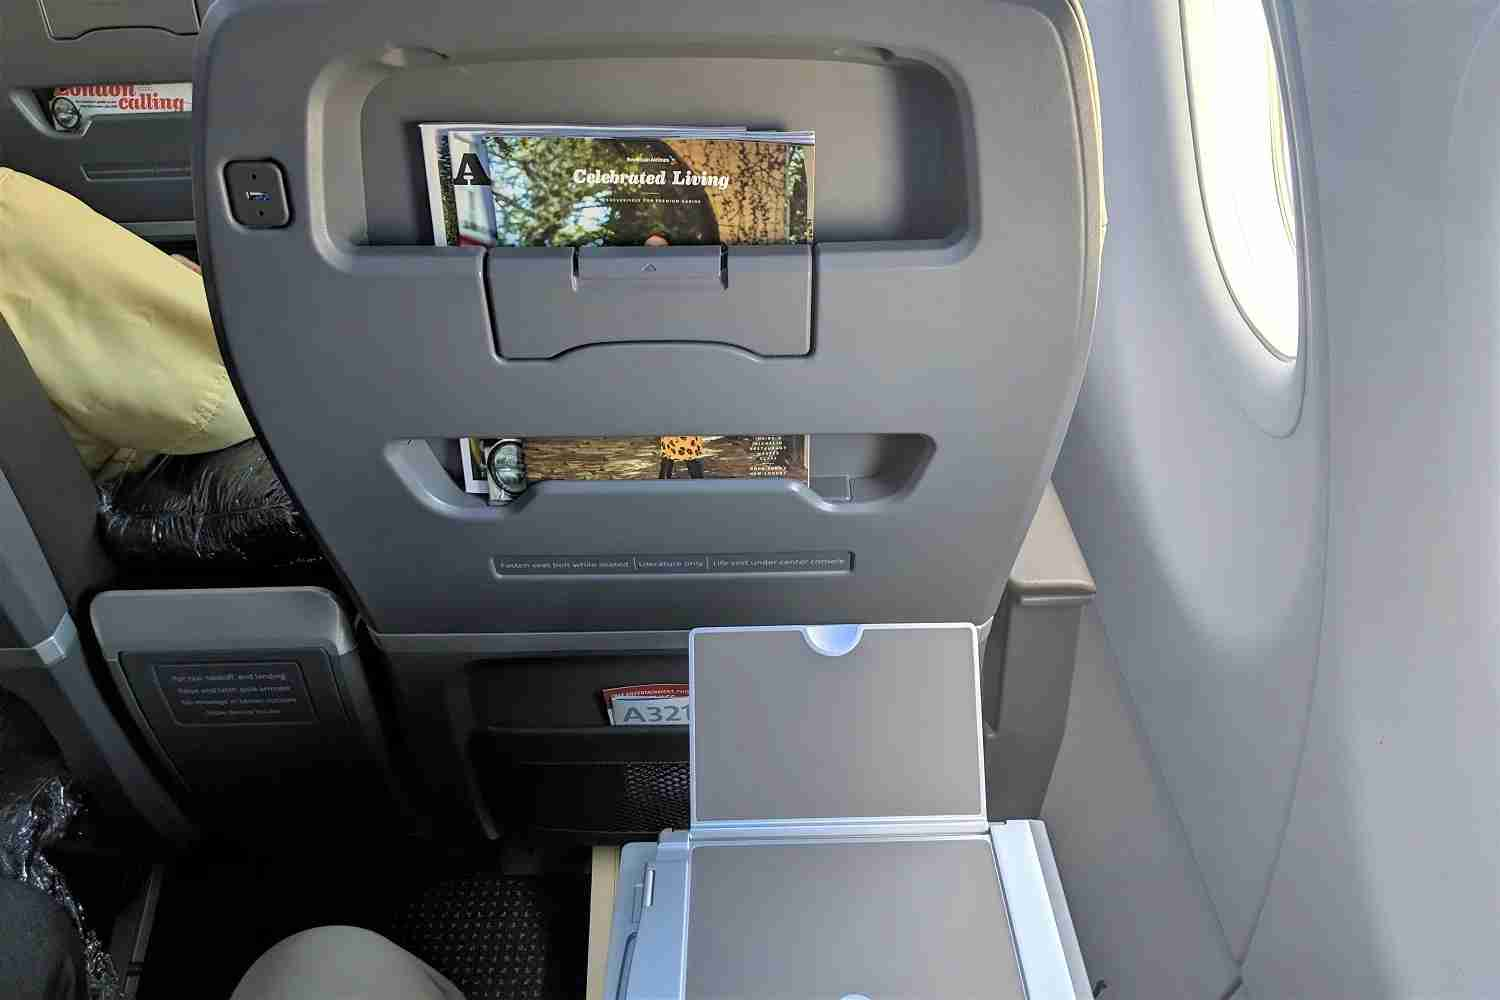 Tray table device holder and seat back on American Airlines